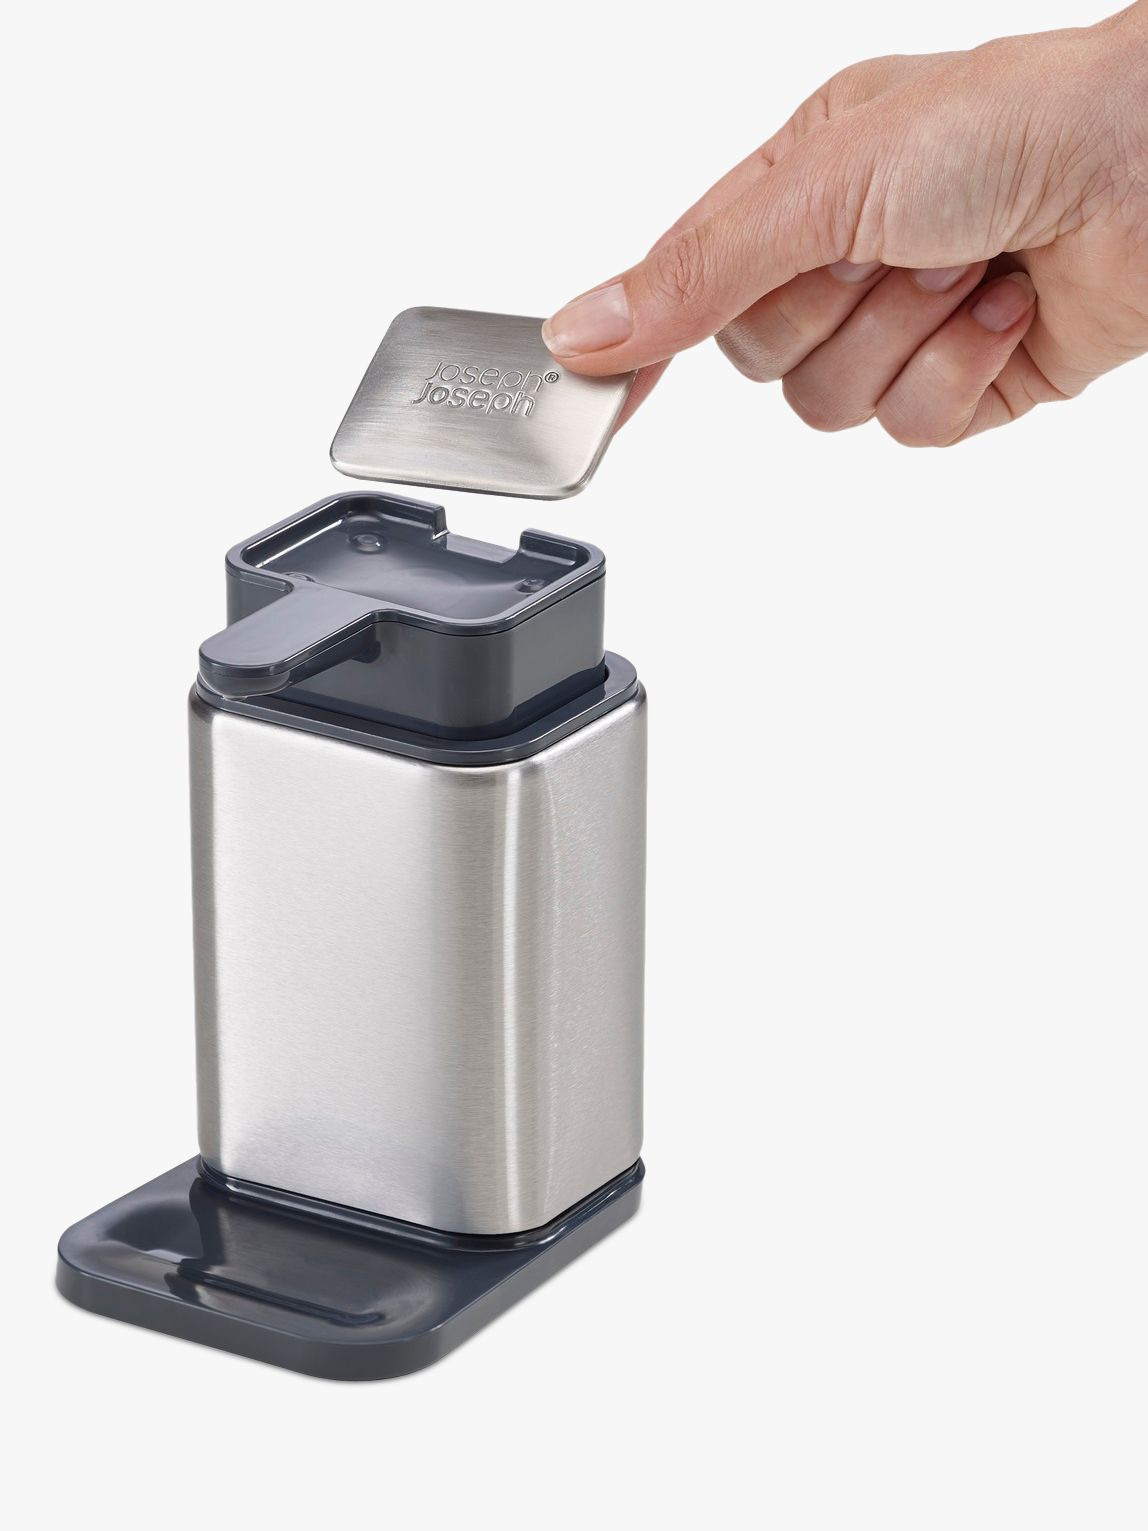 Joseph Joseph Joseph Joseph Surface Soap Dispenser, Stainless Steel